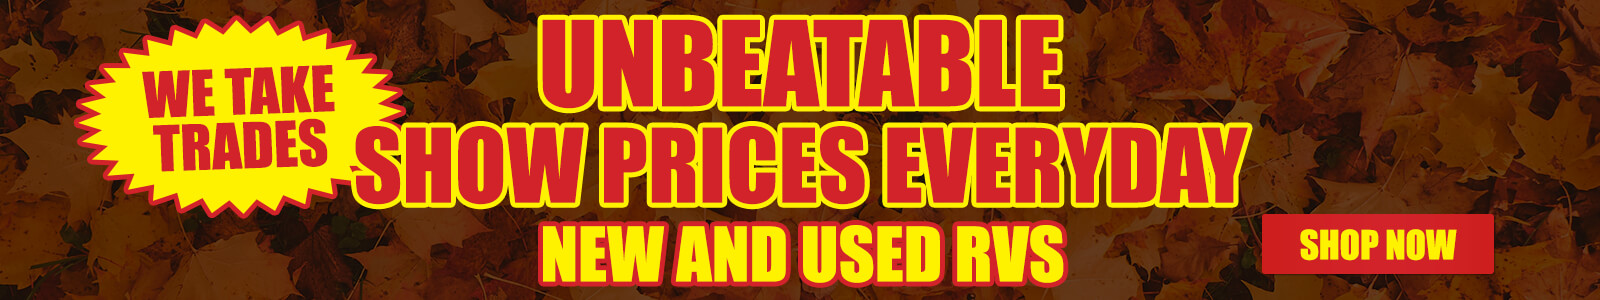 Unbeatable Show Prices Everyday